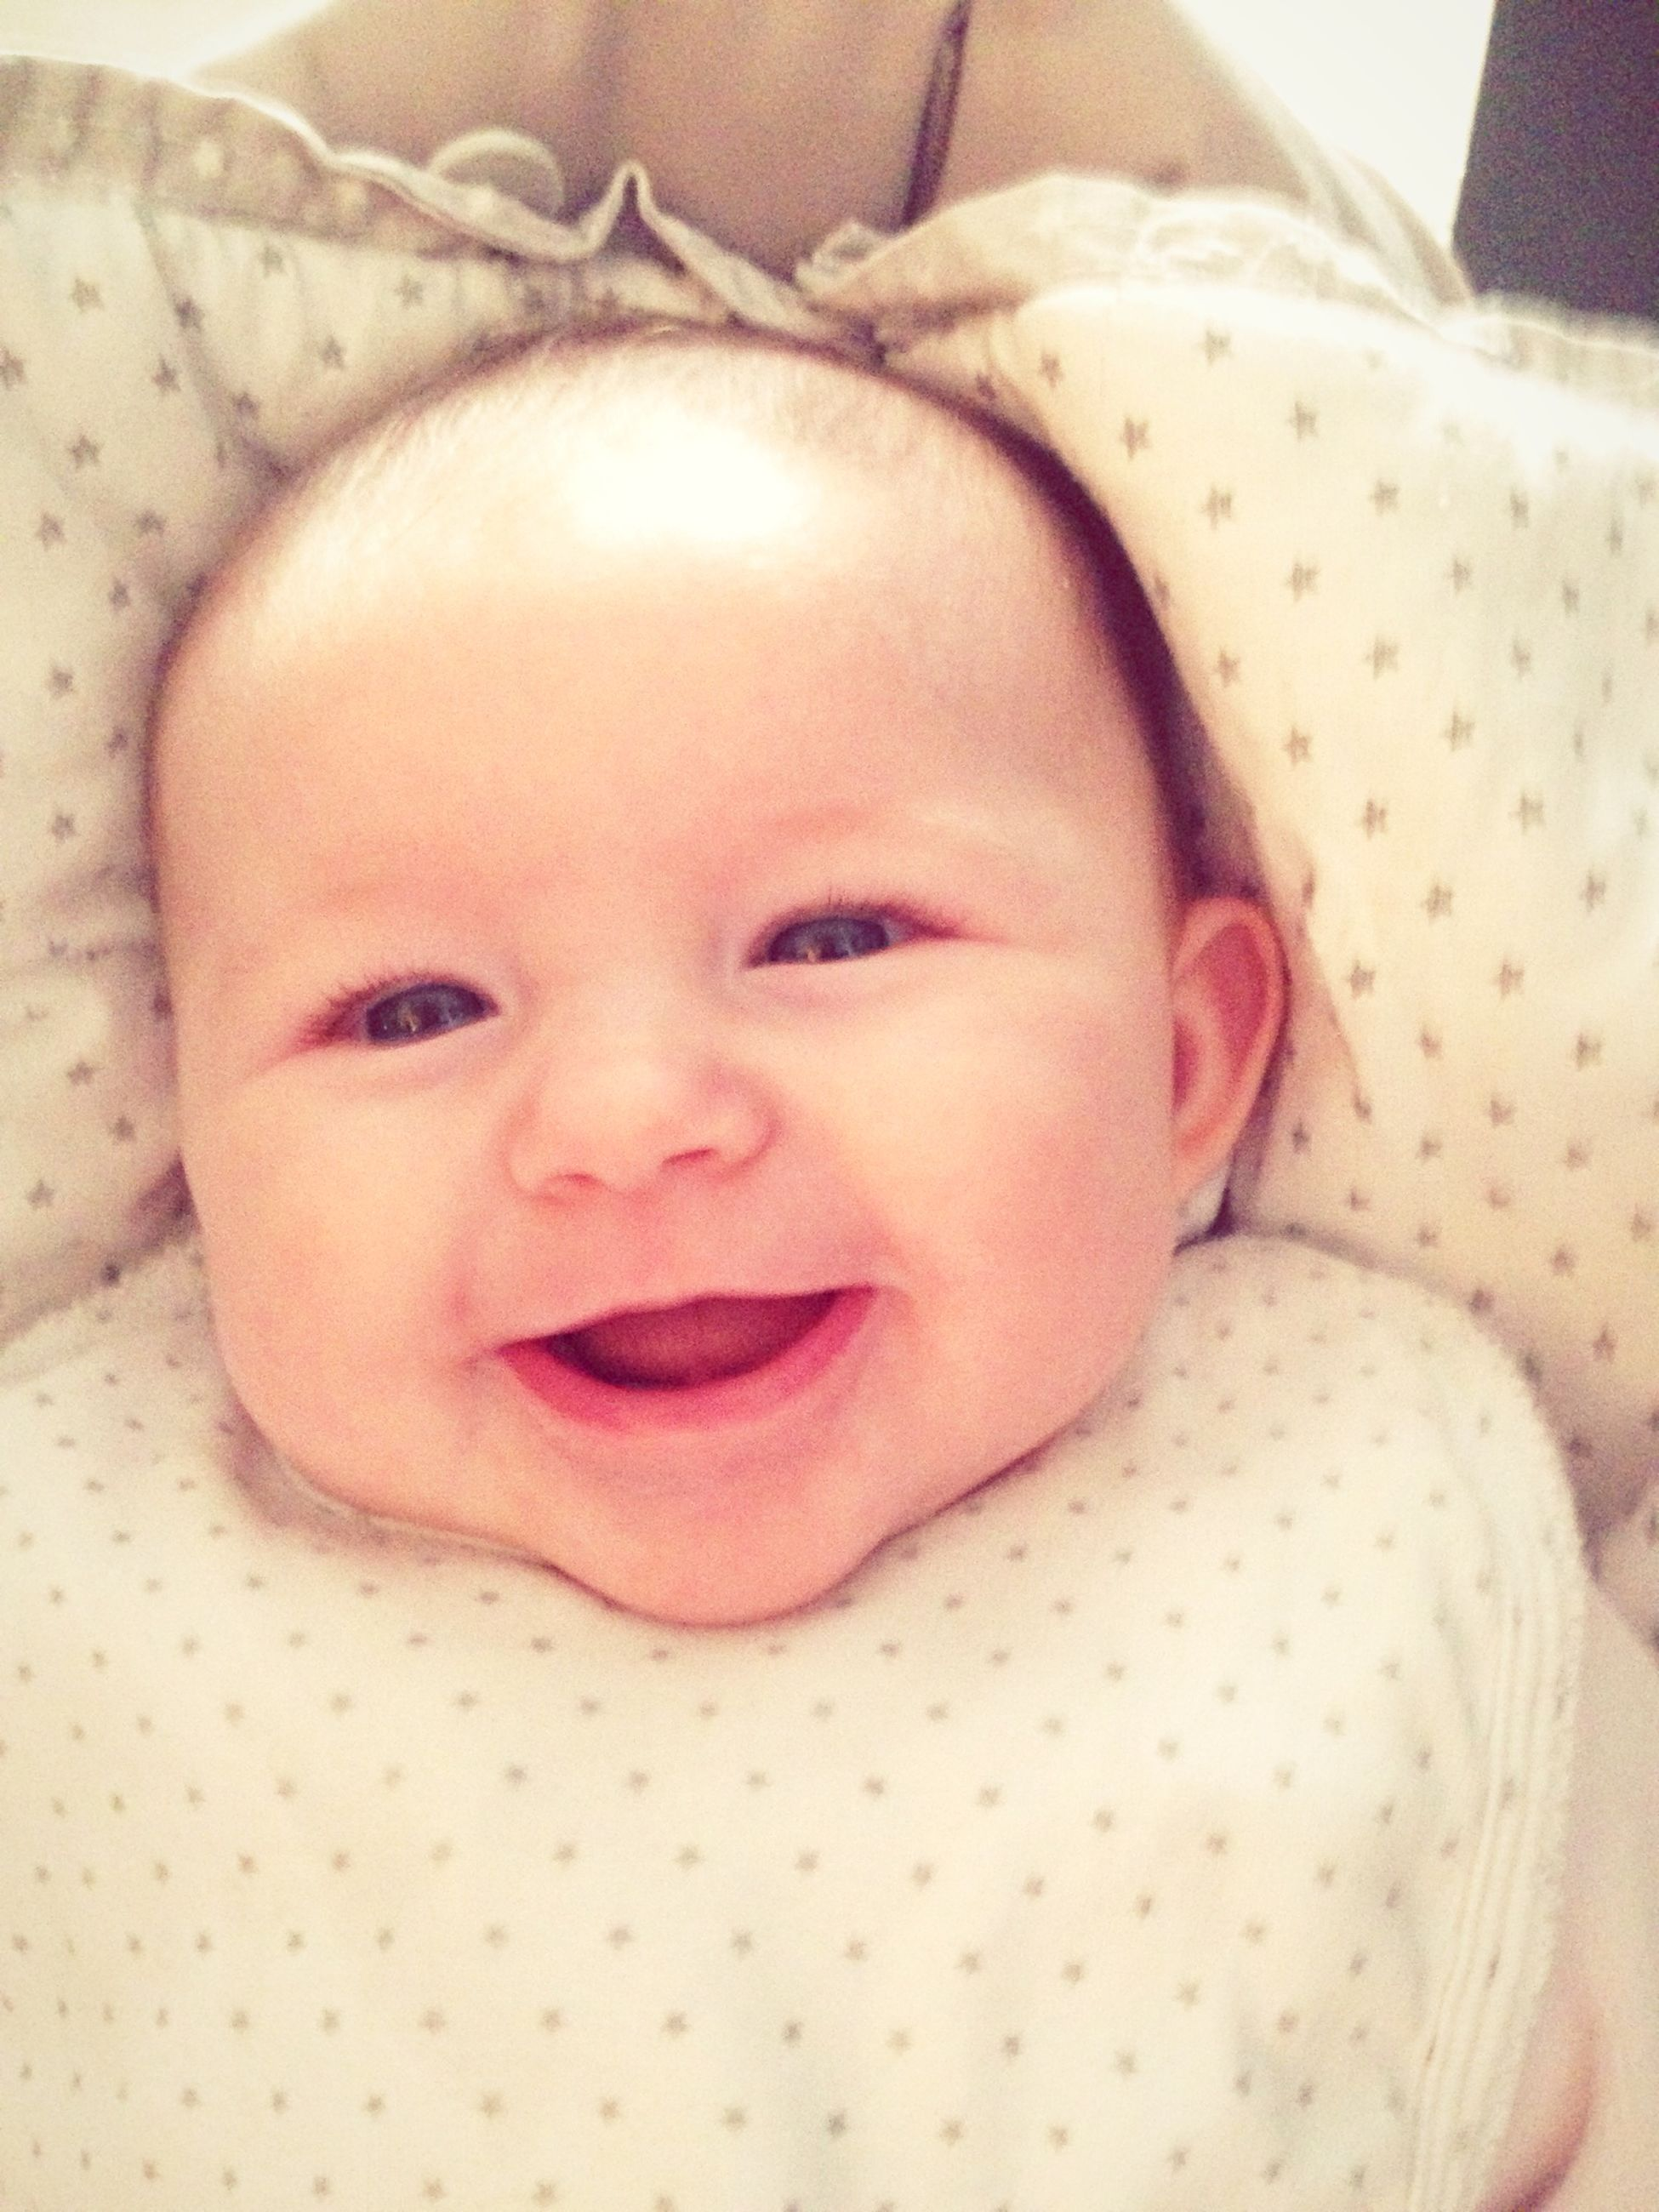 High angle portrait of smiling baby girl on bed